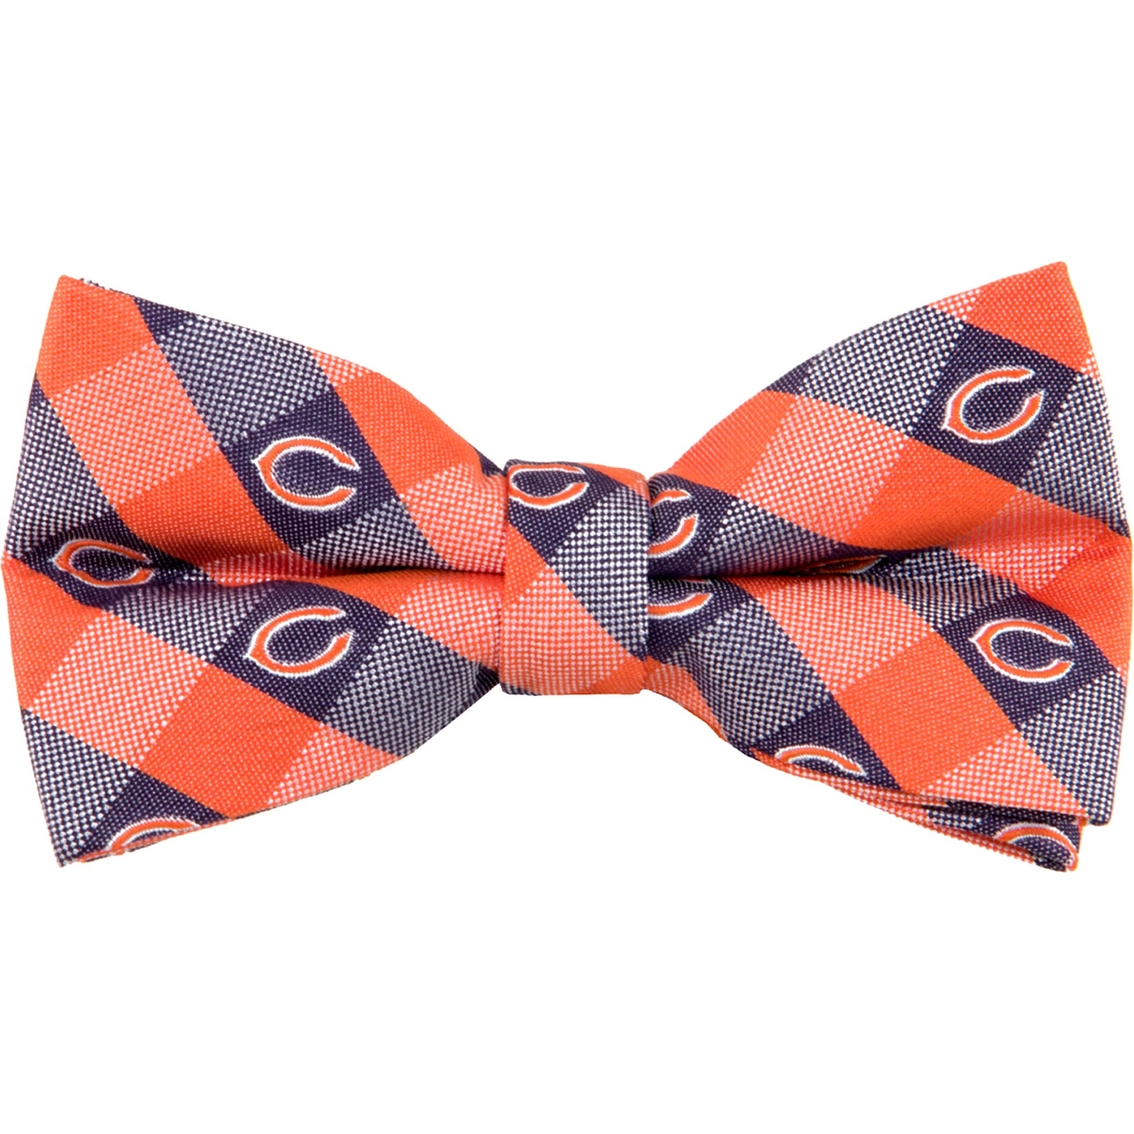 Nfl Ties Chicago Bears Checked Bow Tie By Eagles Wings | Ties ...